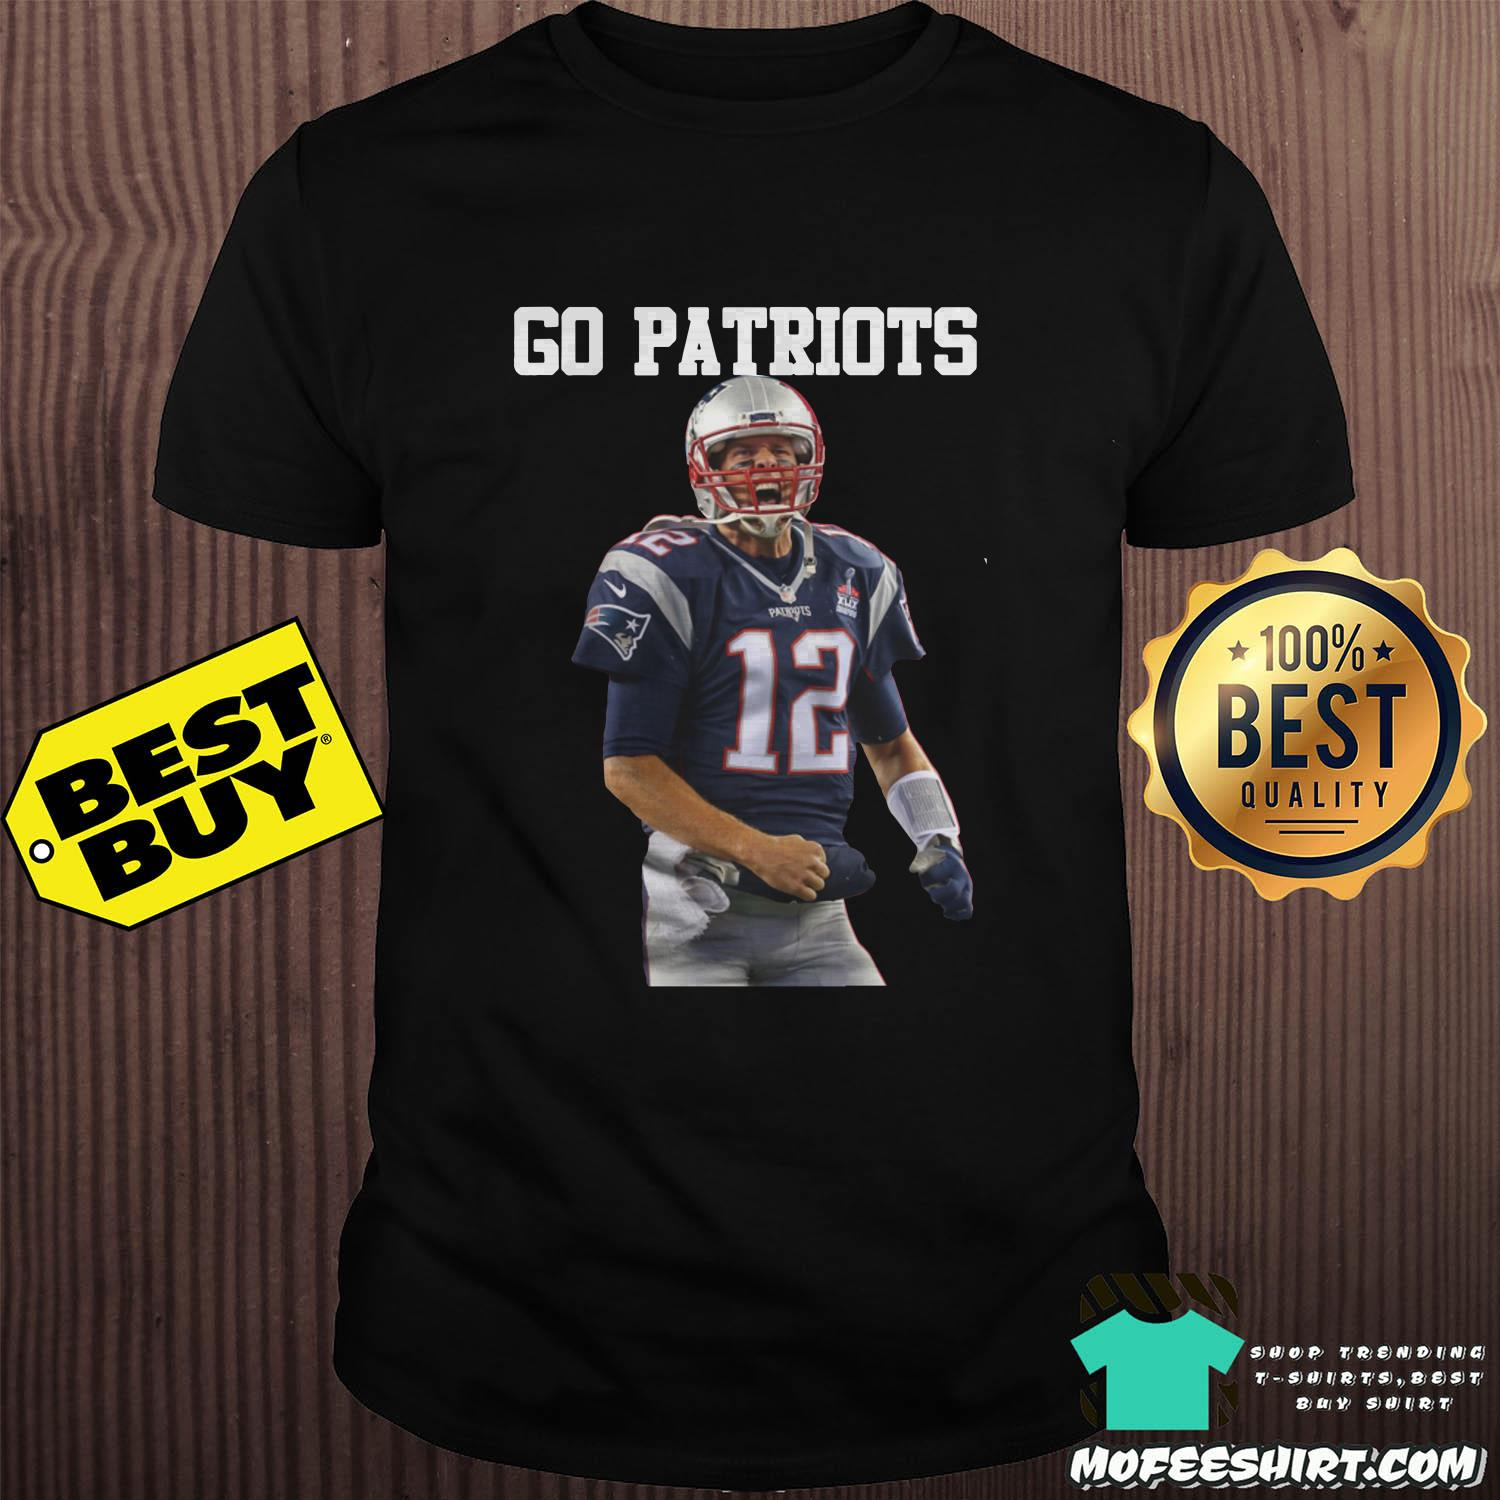 tom brady go patriots 12 rugby shirt - Tom Brady Go Patriots 12 Rugby Shirt